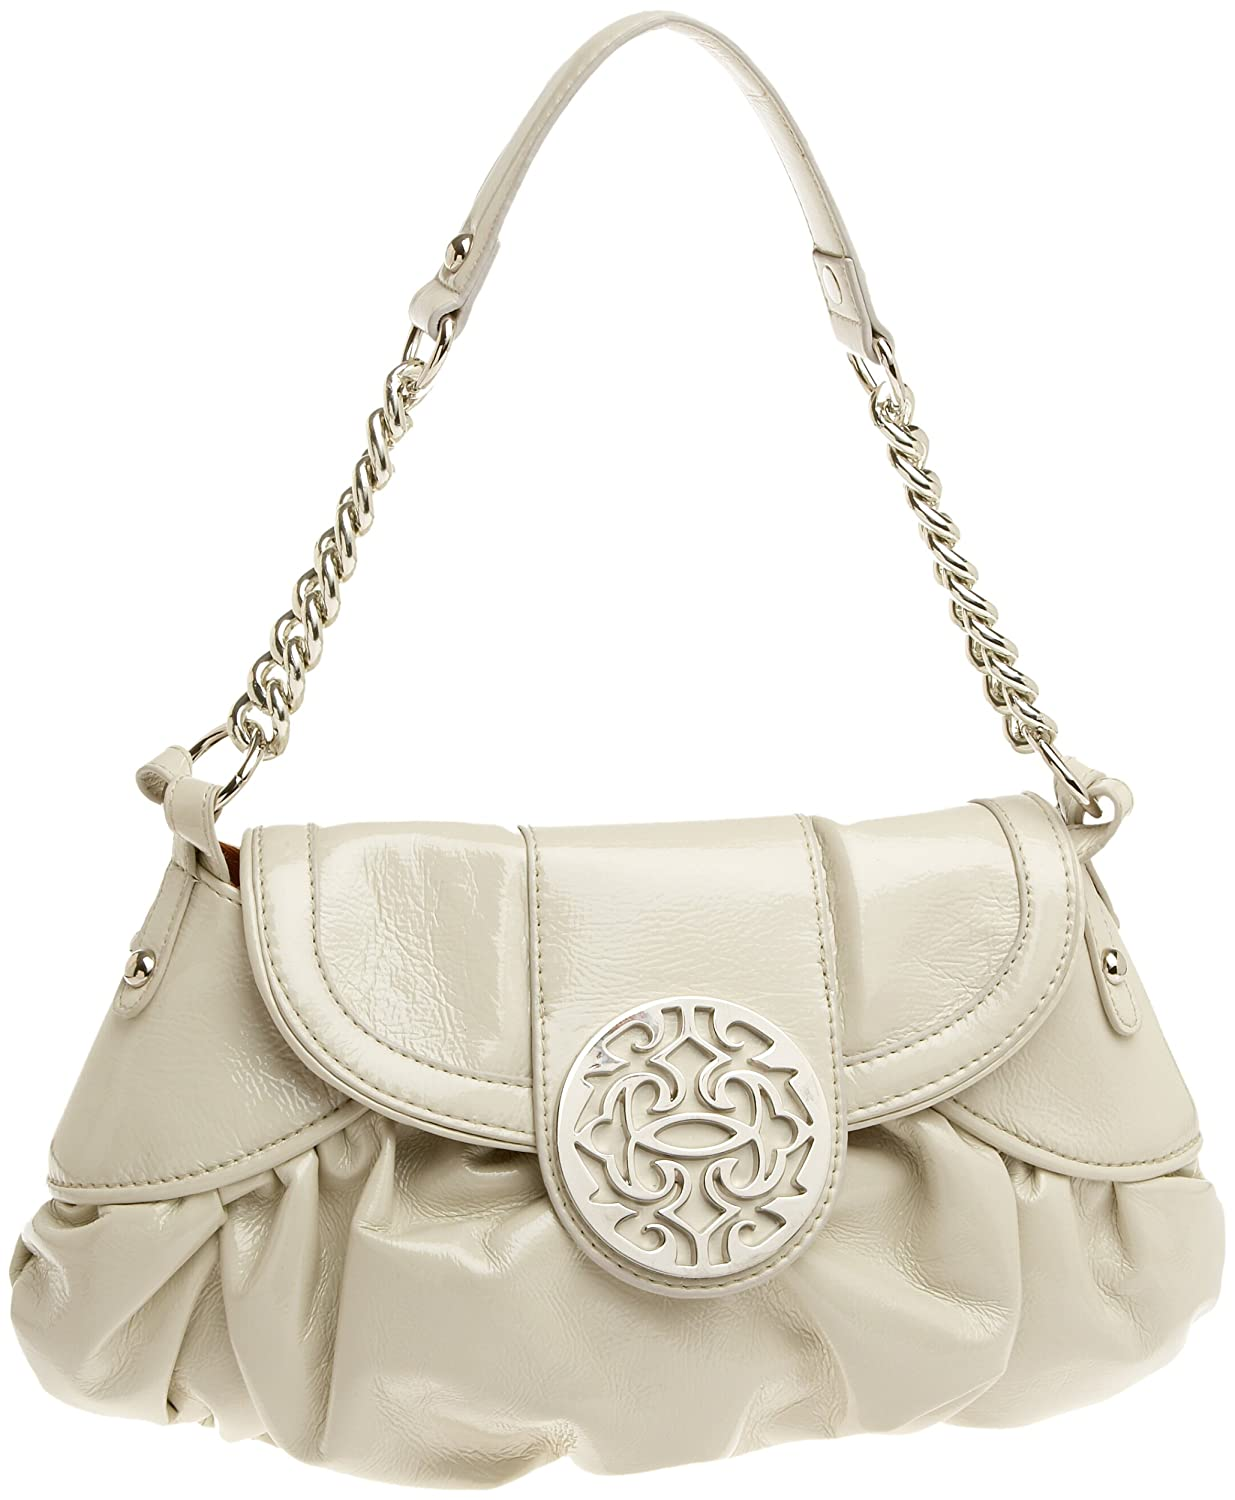 Endless.com: Steve Madden To-Talli-Patent Demi Shoulder Bag: Categories - Free Overnight Shipping & Return Shipping from endless.com